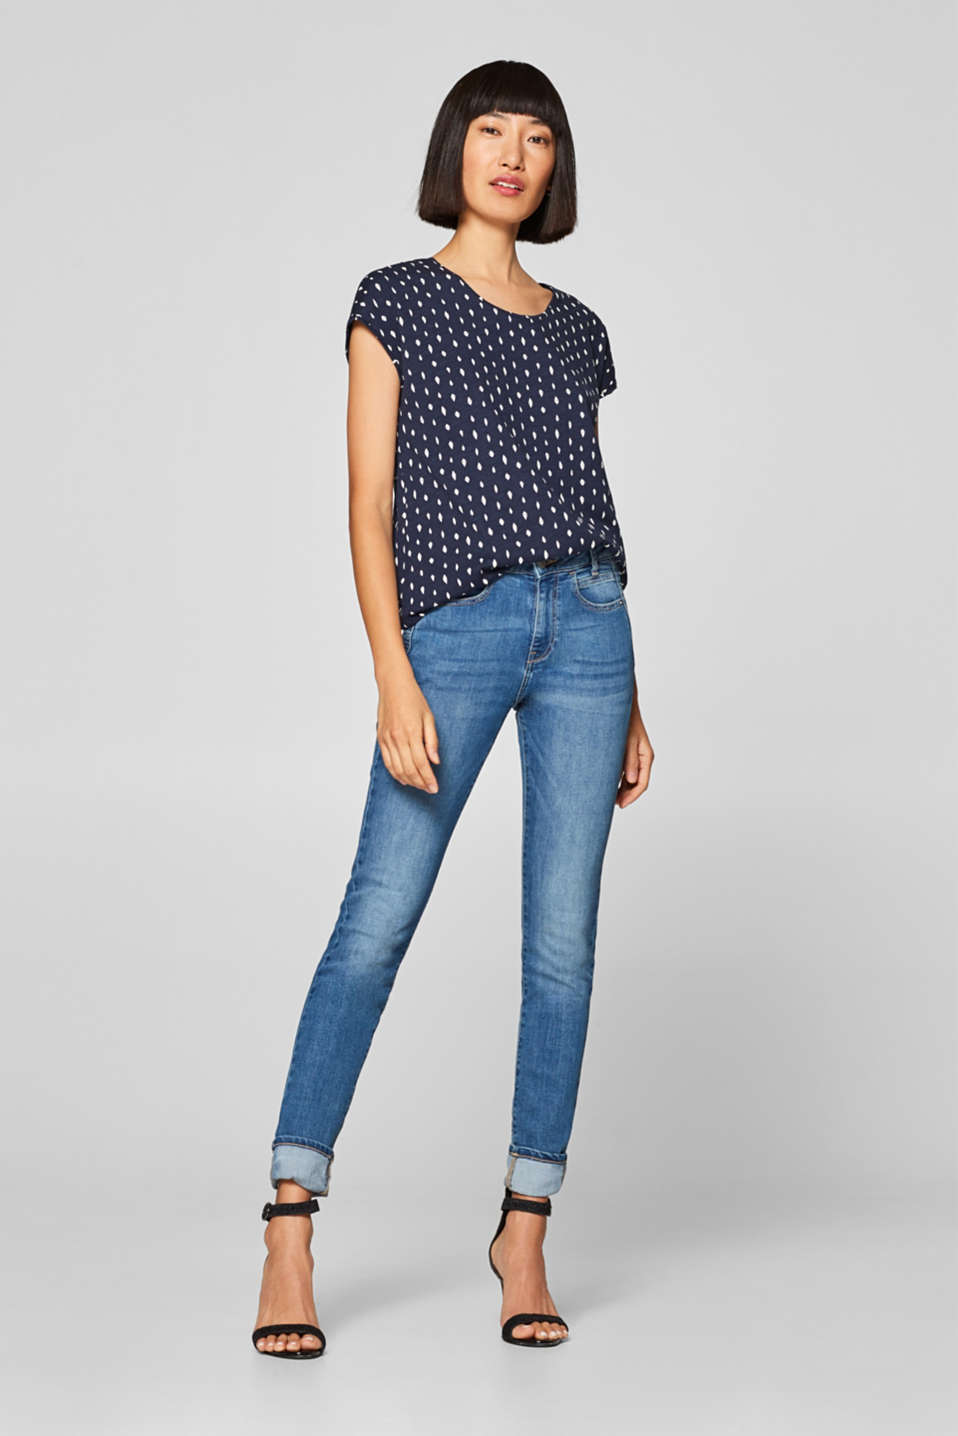 Printed top with an elasticated waistband, 100% cotton, NAVY, detail image number 1